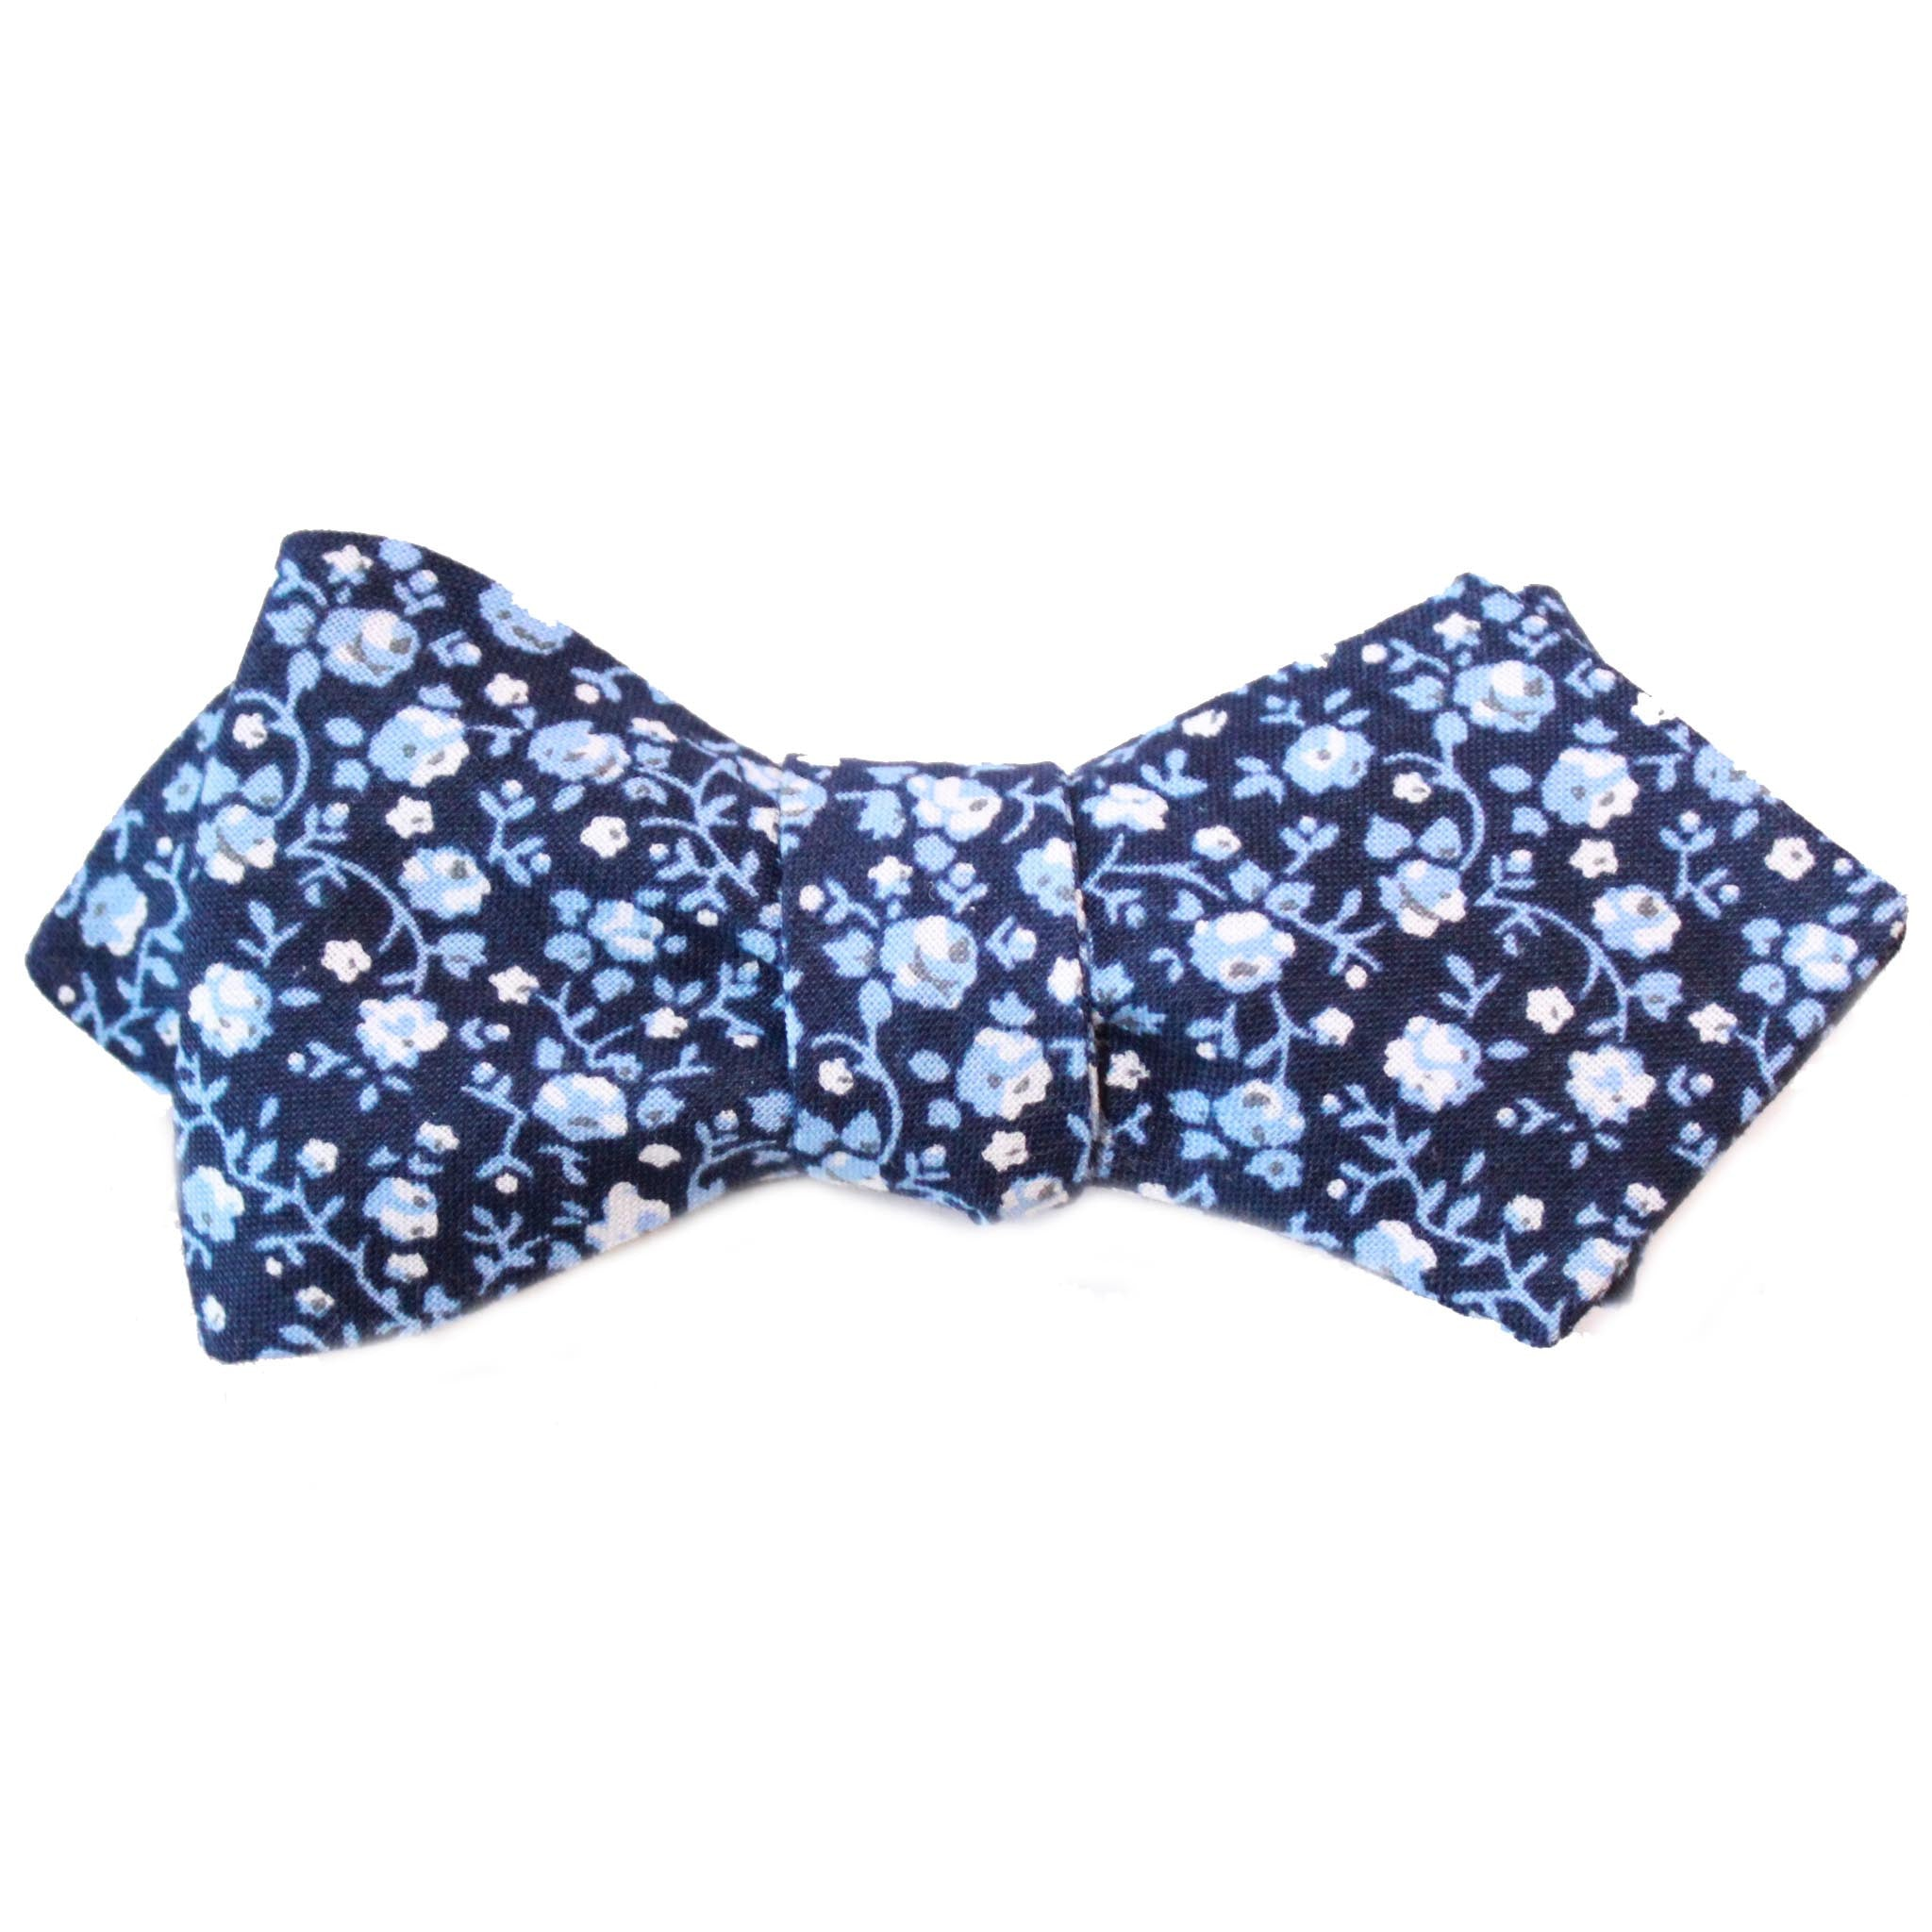 dark and light blue floral diamond point bow tie